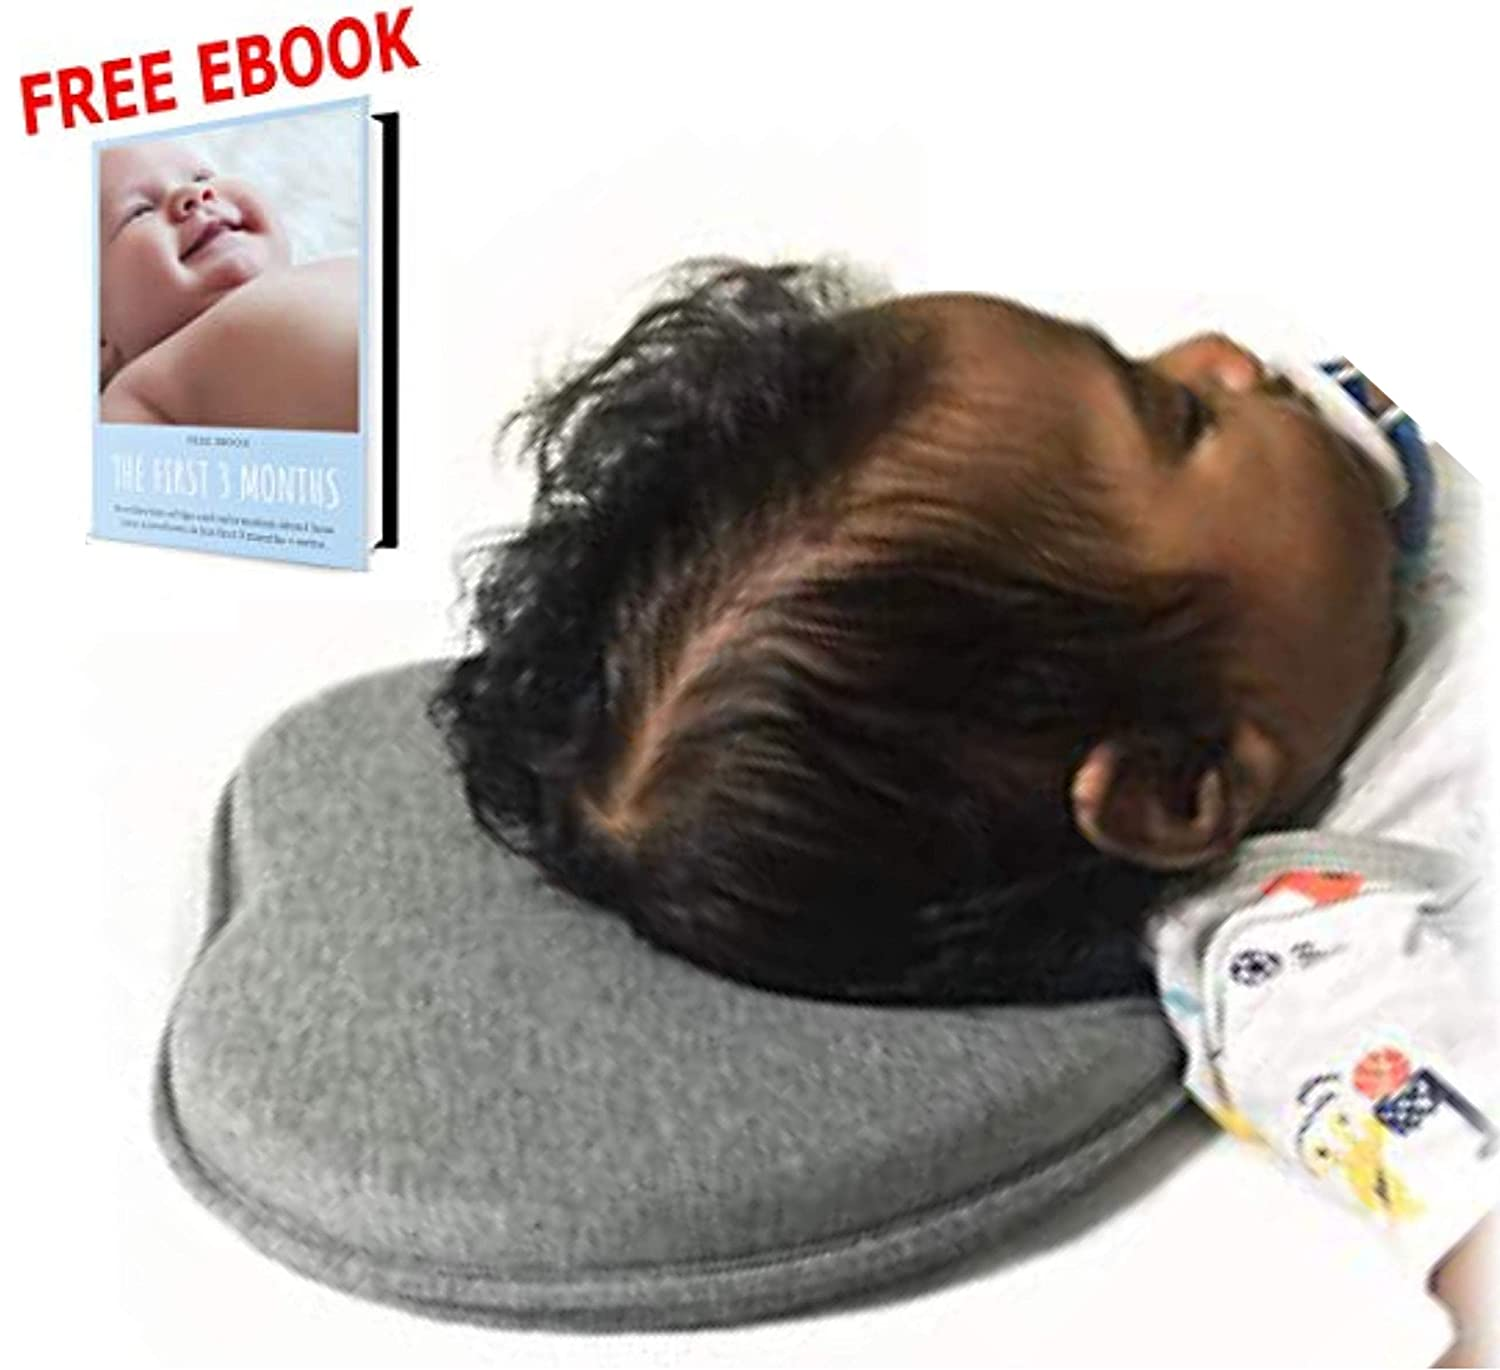 Free EBOOK Baby Head Shaping Pillow for Newborn Infant Neck Support Prevent Flat Head Syndrome,Plagiocephaly,Brachycephaly and Torticollis Memory Foam 100/% Organic Cotton Hypoallergenic